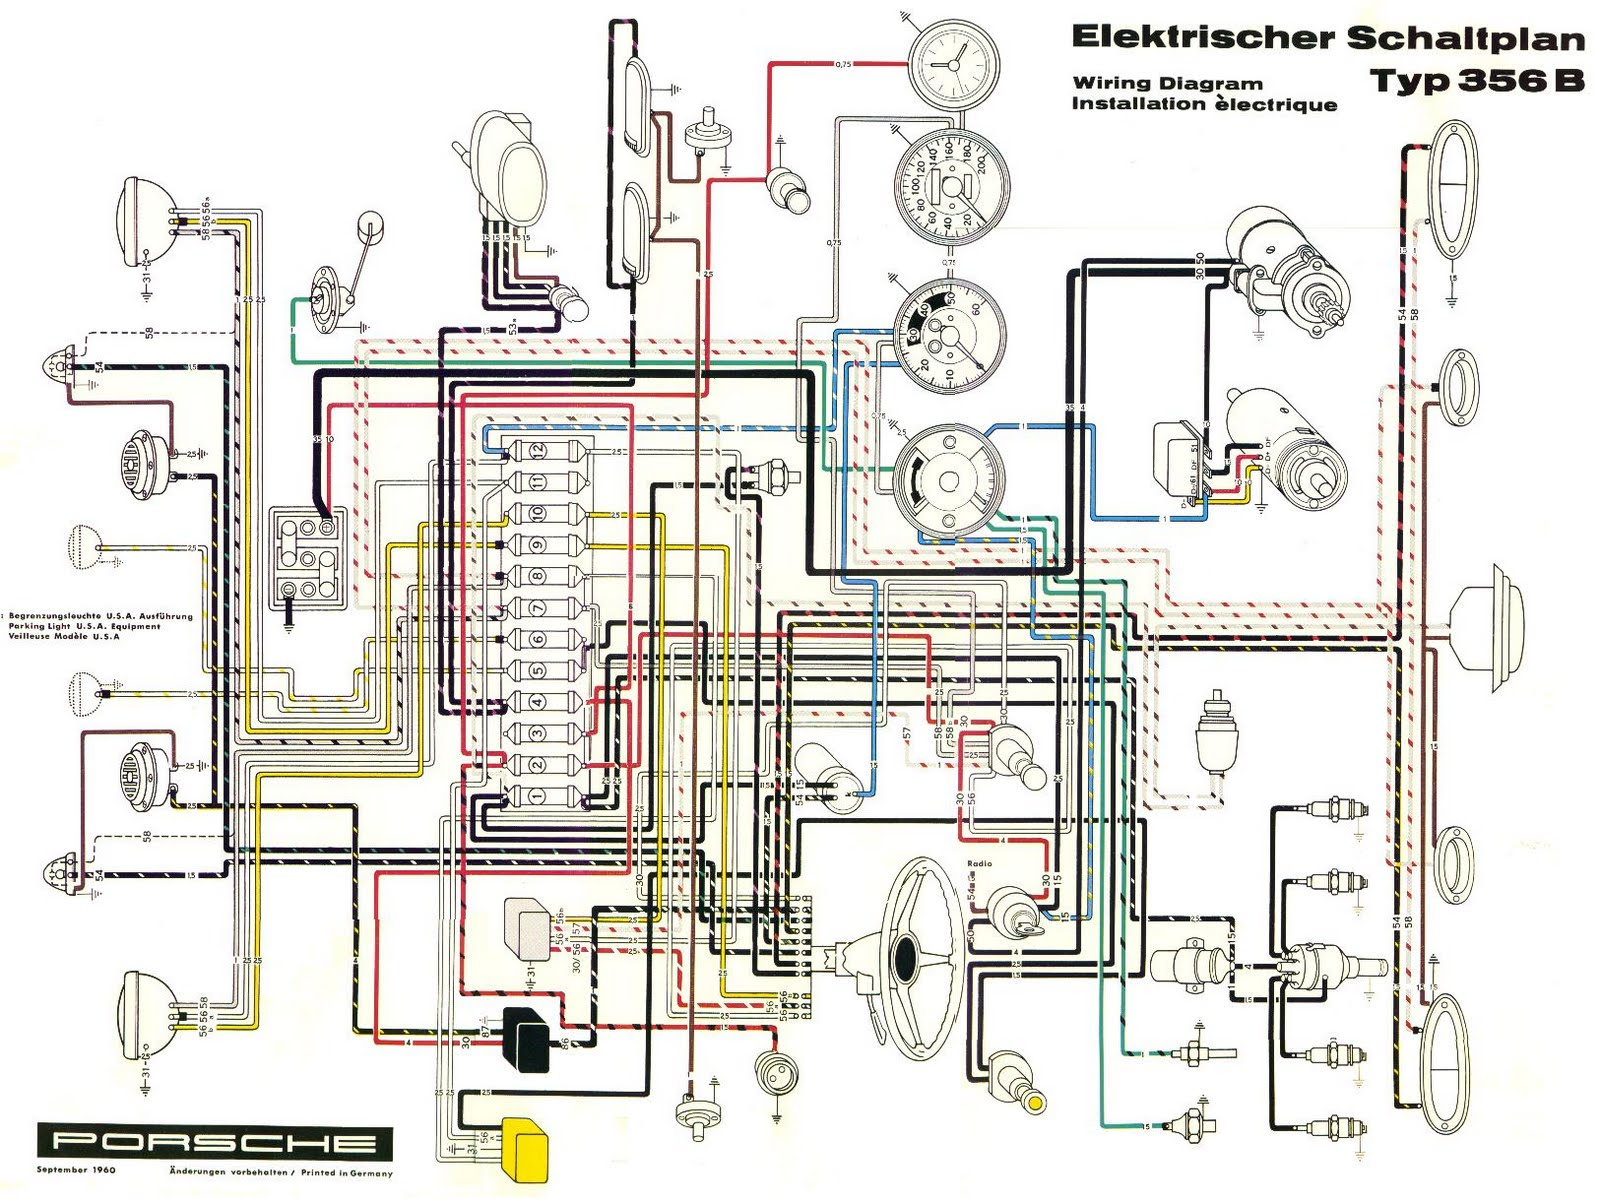 Ignition Switch Wiring Diagram For 1968 Gto in addition TJ3f 16884 as well 681 To 1968 Chevelle Wiring Diagram likewise Sucp 1209 Aftermarket Gauges With A Shot Of Muscle together with 69 Camaro Wiper Motor Wiring Diagram. on 1967 chevelle tach wiring